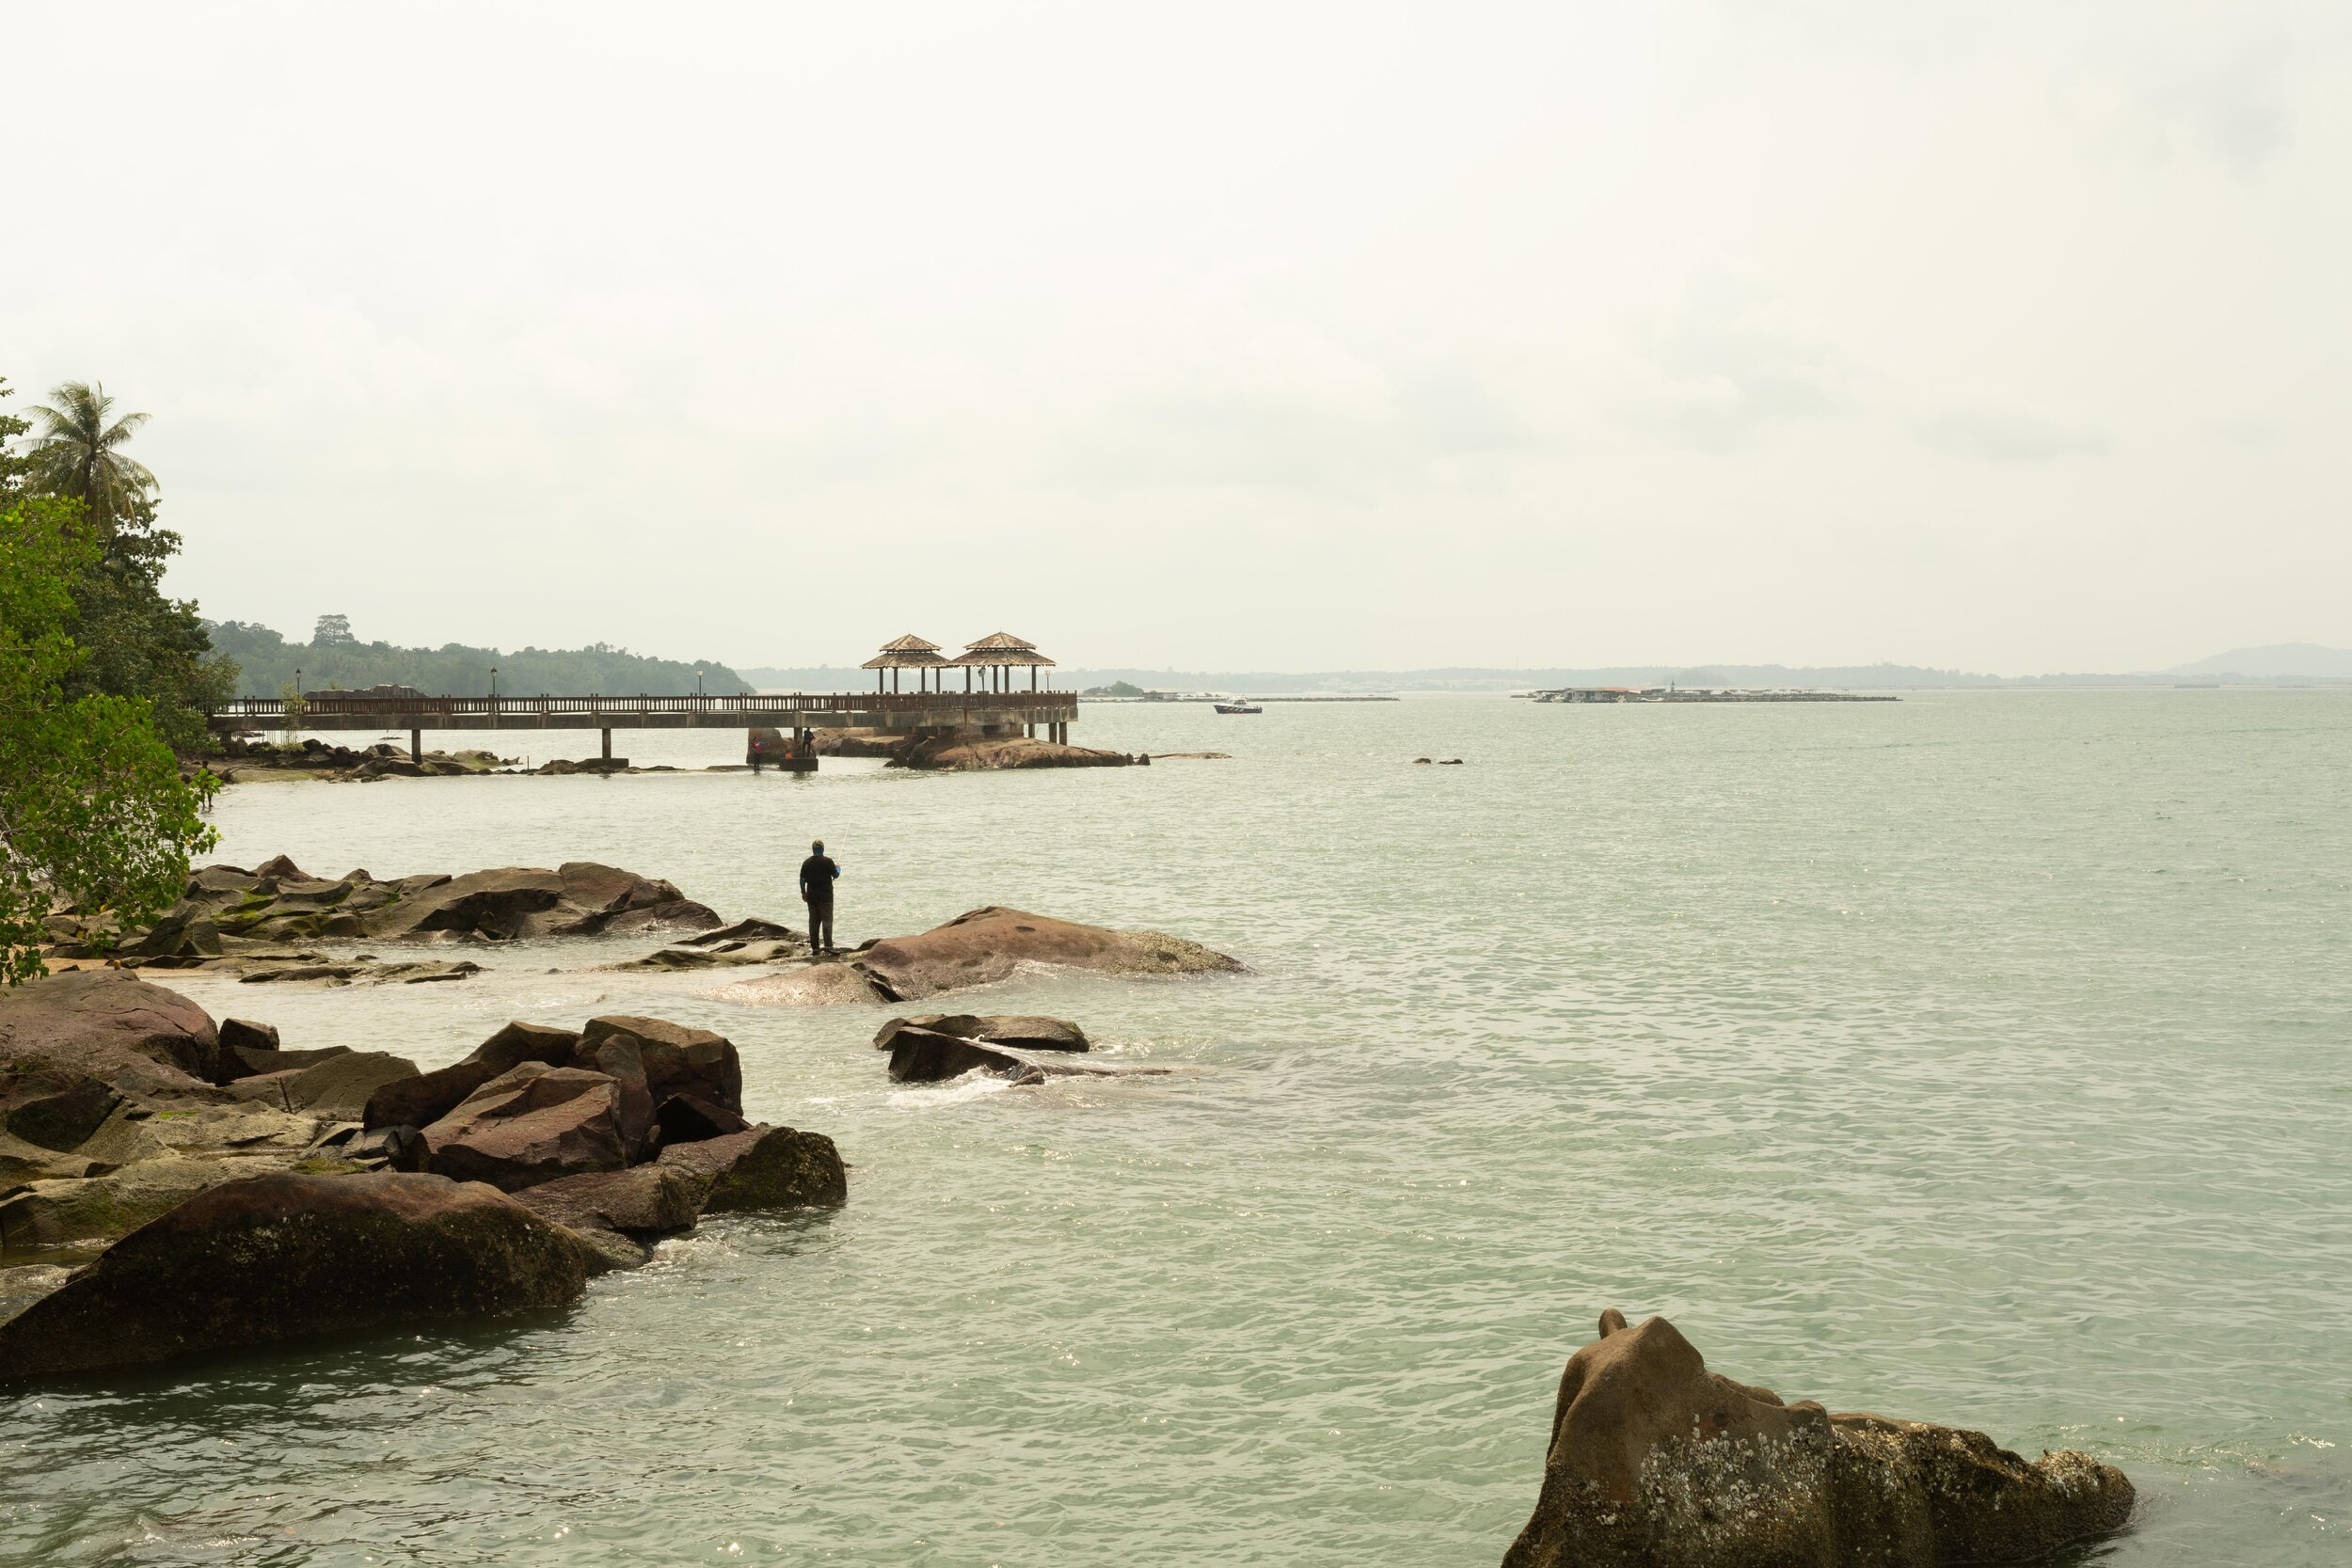 Looking east from the island's main jetty, with the fisherman and stone prominent in the waters